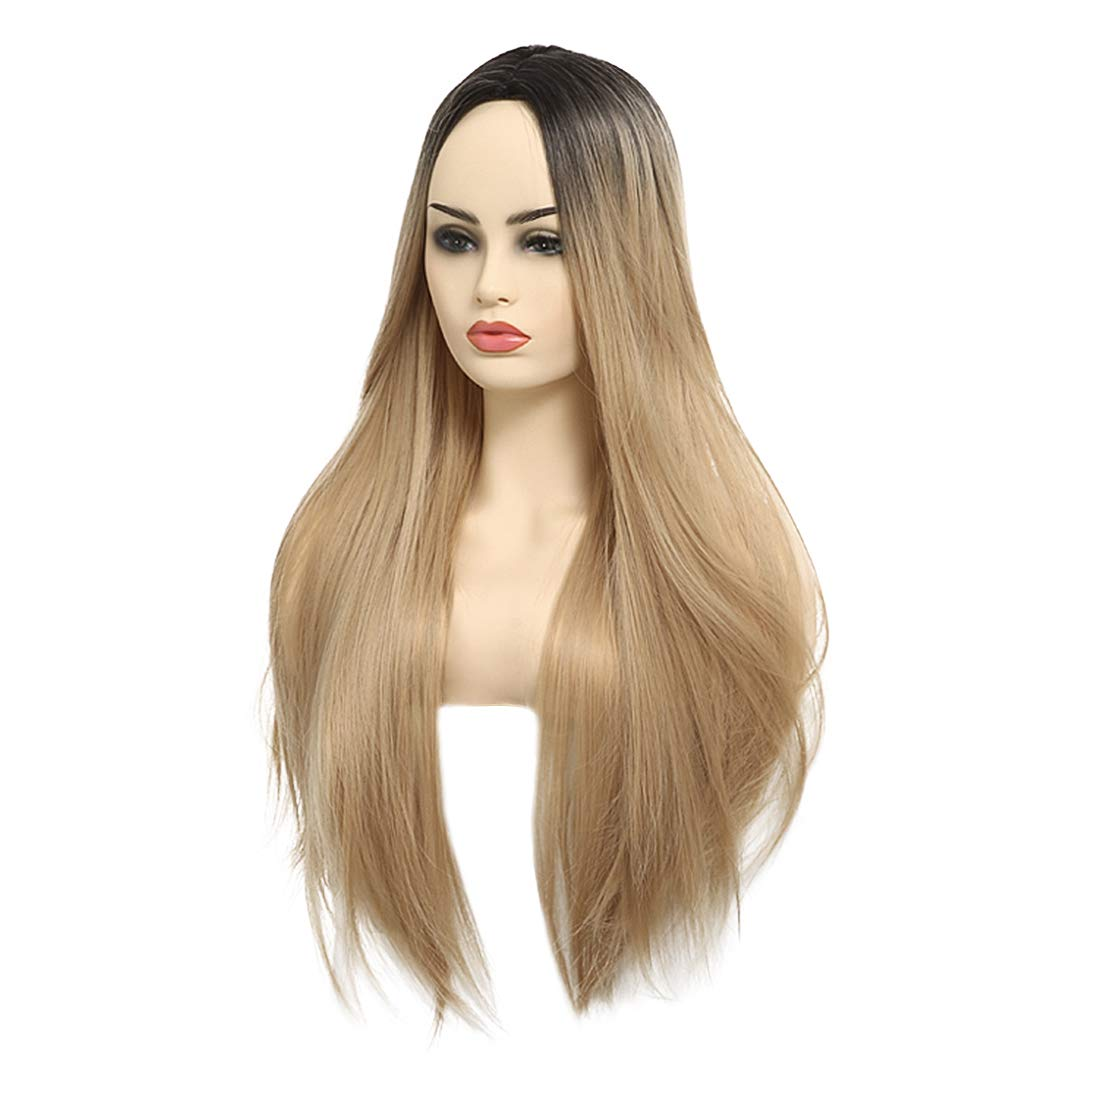 FESHFEN Ombre Synthetic Wig 27 Inch Kanekalon Fiber Dark Roots Two Tone Natural Long Straight Golden Blonde Heat Resistant Fiber Middle Part Simulated Scalp Wig for Women COSPLAY Party Christmas Girls